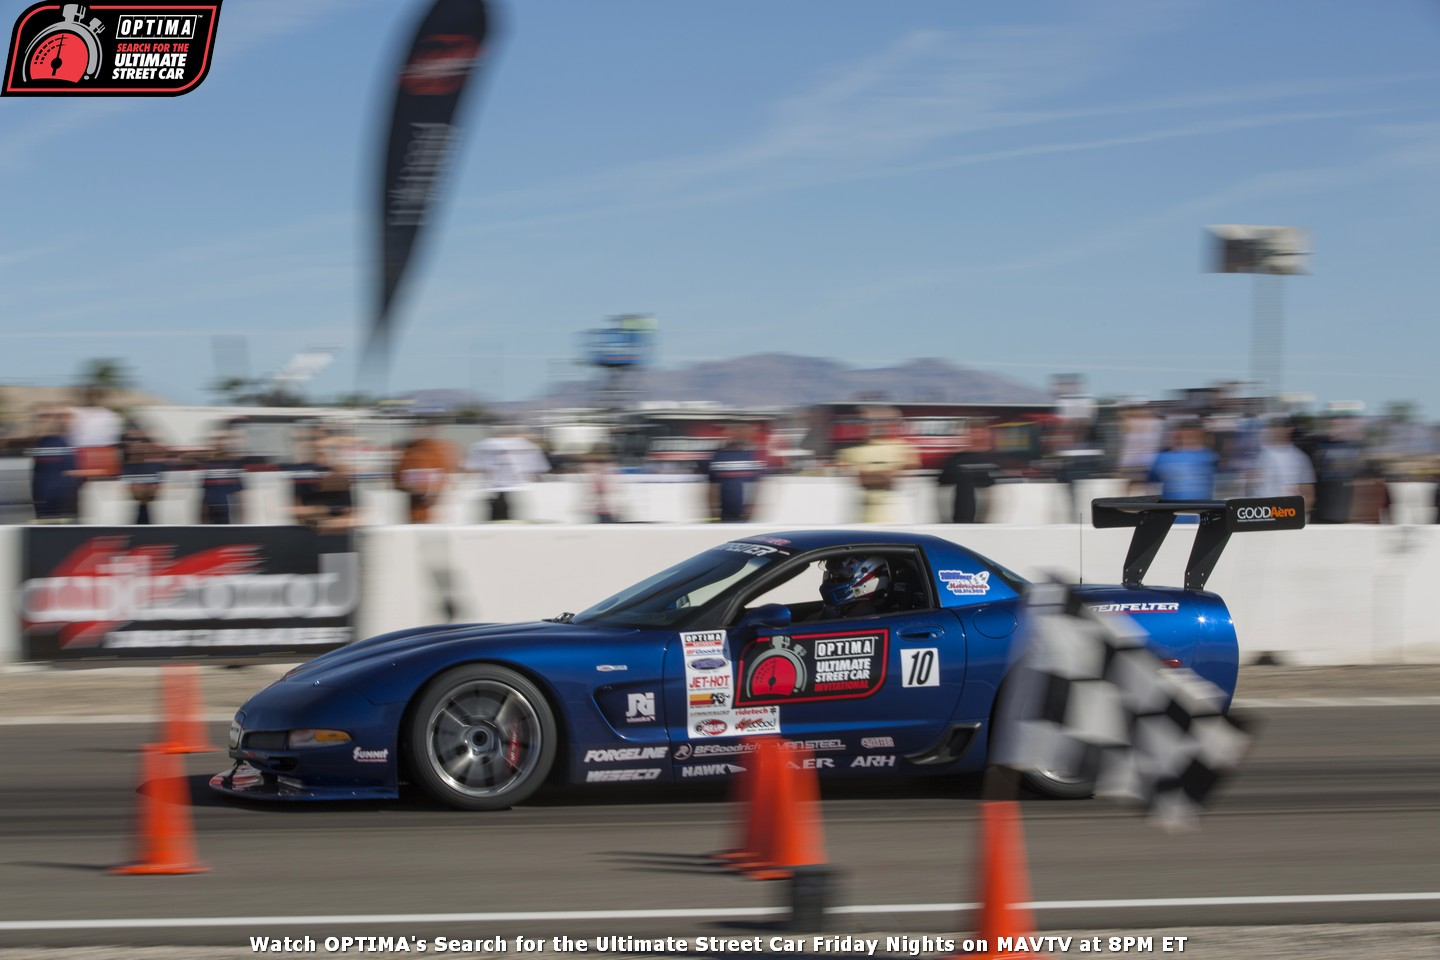 p-Danny-Popp-2003-Chevrolet-Corvette-Wilwood-Speed-Stop-Challenge-2014-OPTIMA-Ultimate-Street-Car-Invitational_108.jpg